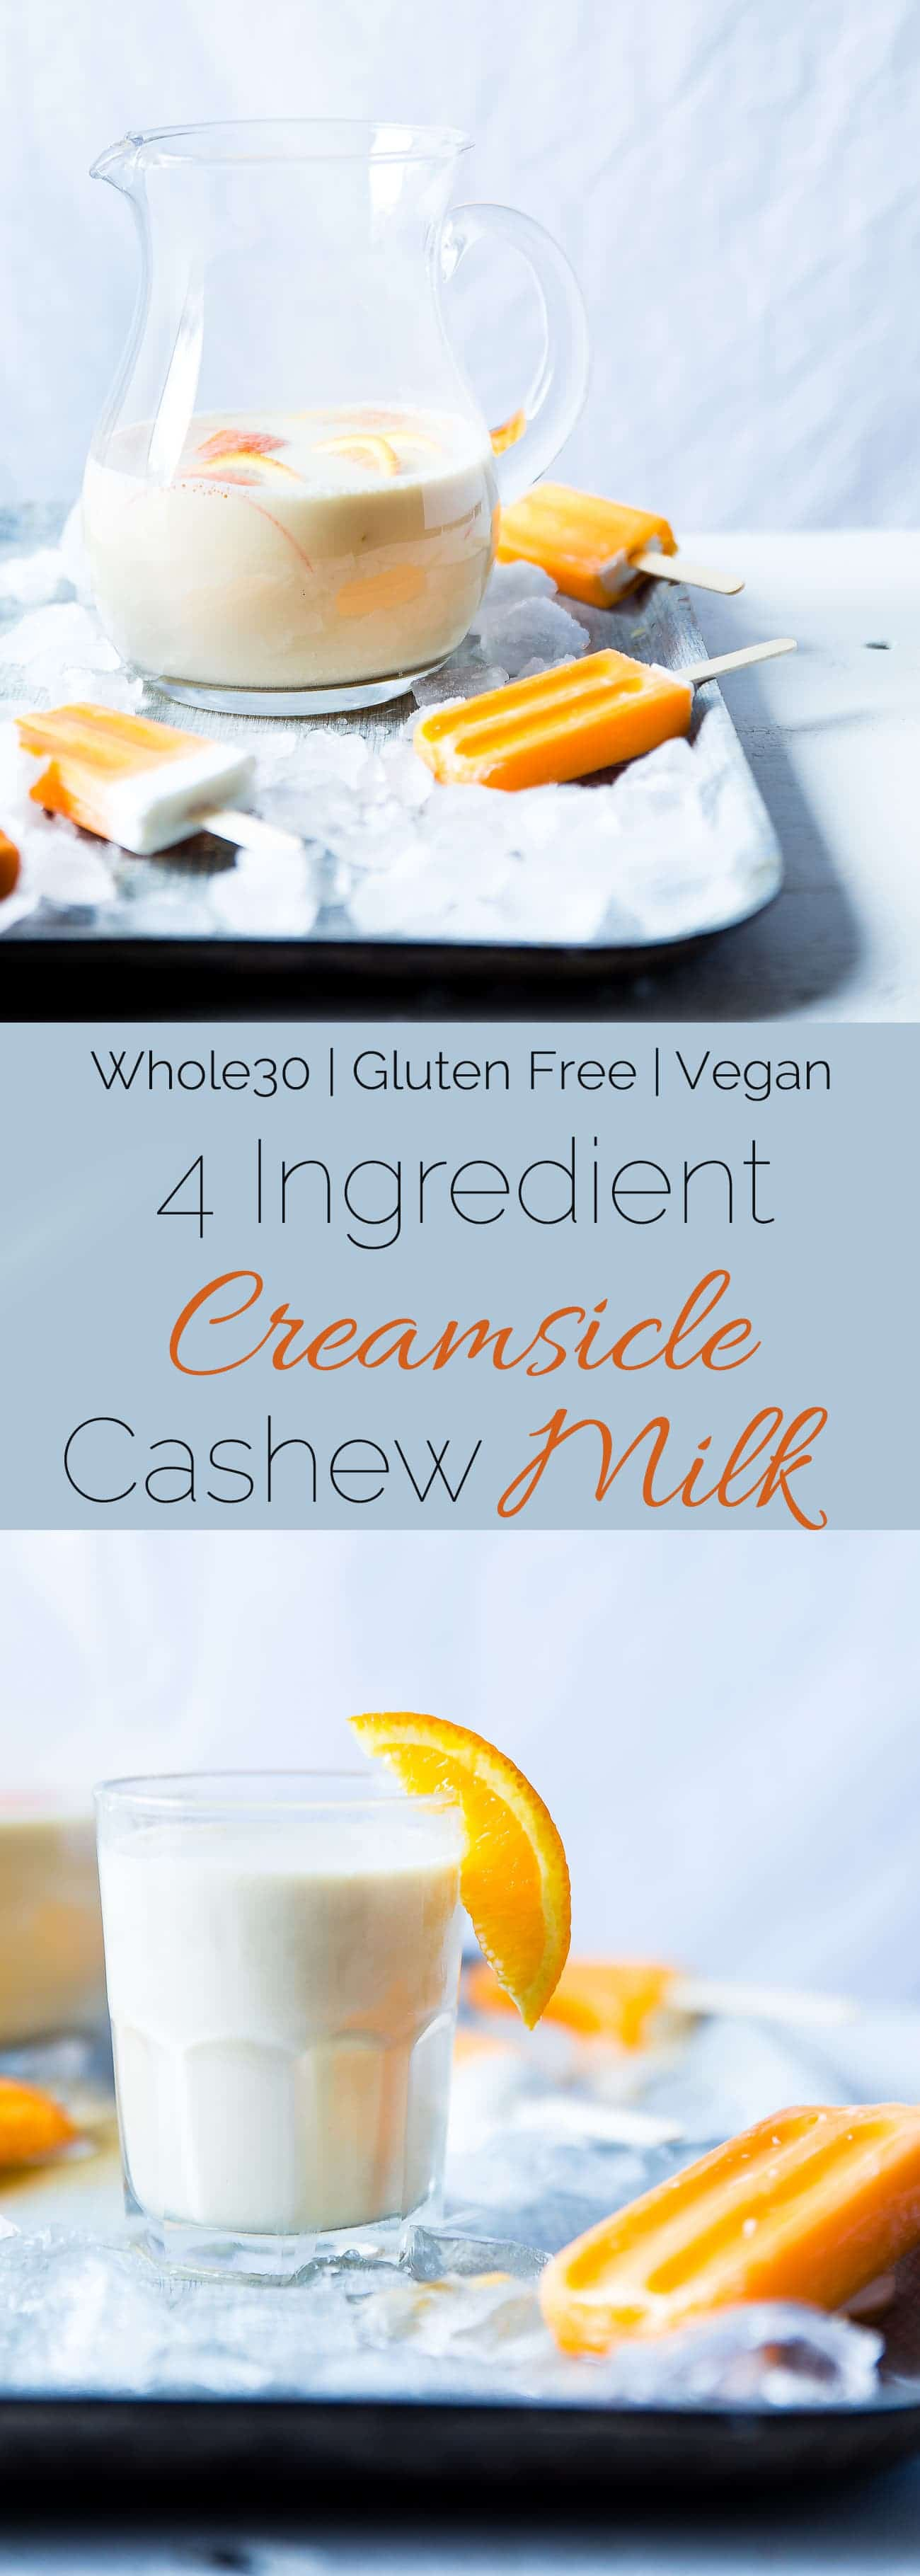 Creamsicle Cashew Milk - This quick and easy, 4 ingredient cashew milk recipe tastes like a creamsicle! It's a paleo, vegan and whole30 compliant drink that tastes better than store bought!   Foodfaithfitness.com   @FoodFaithFit